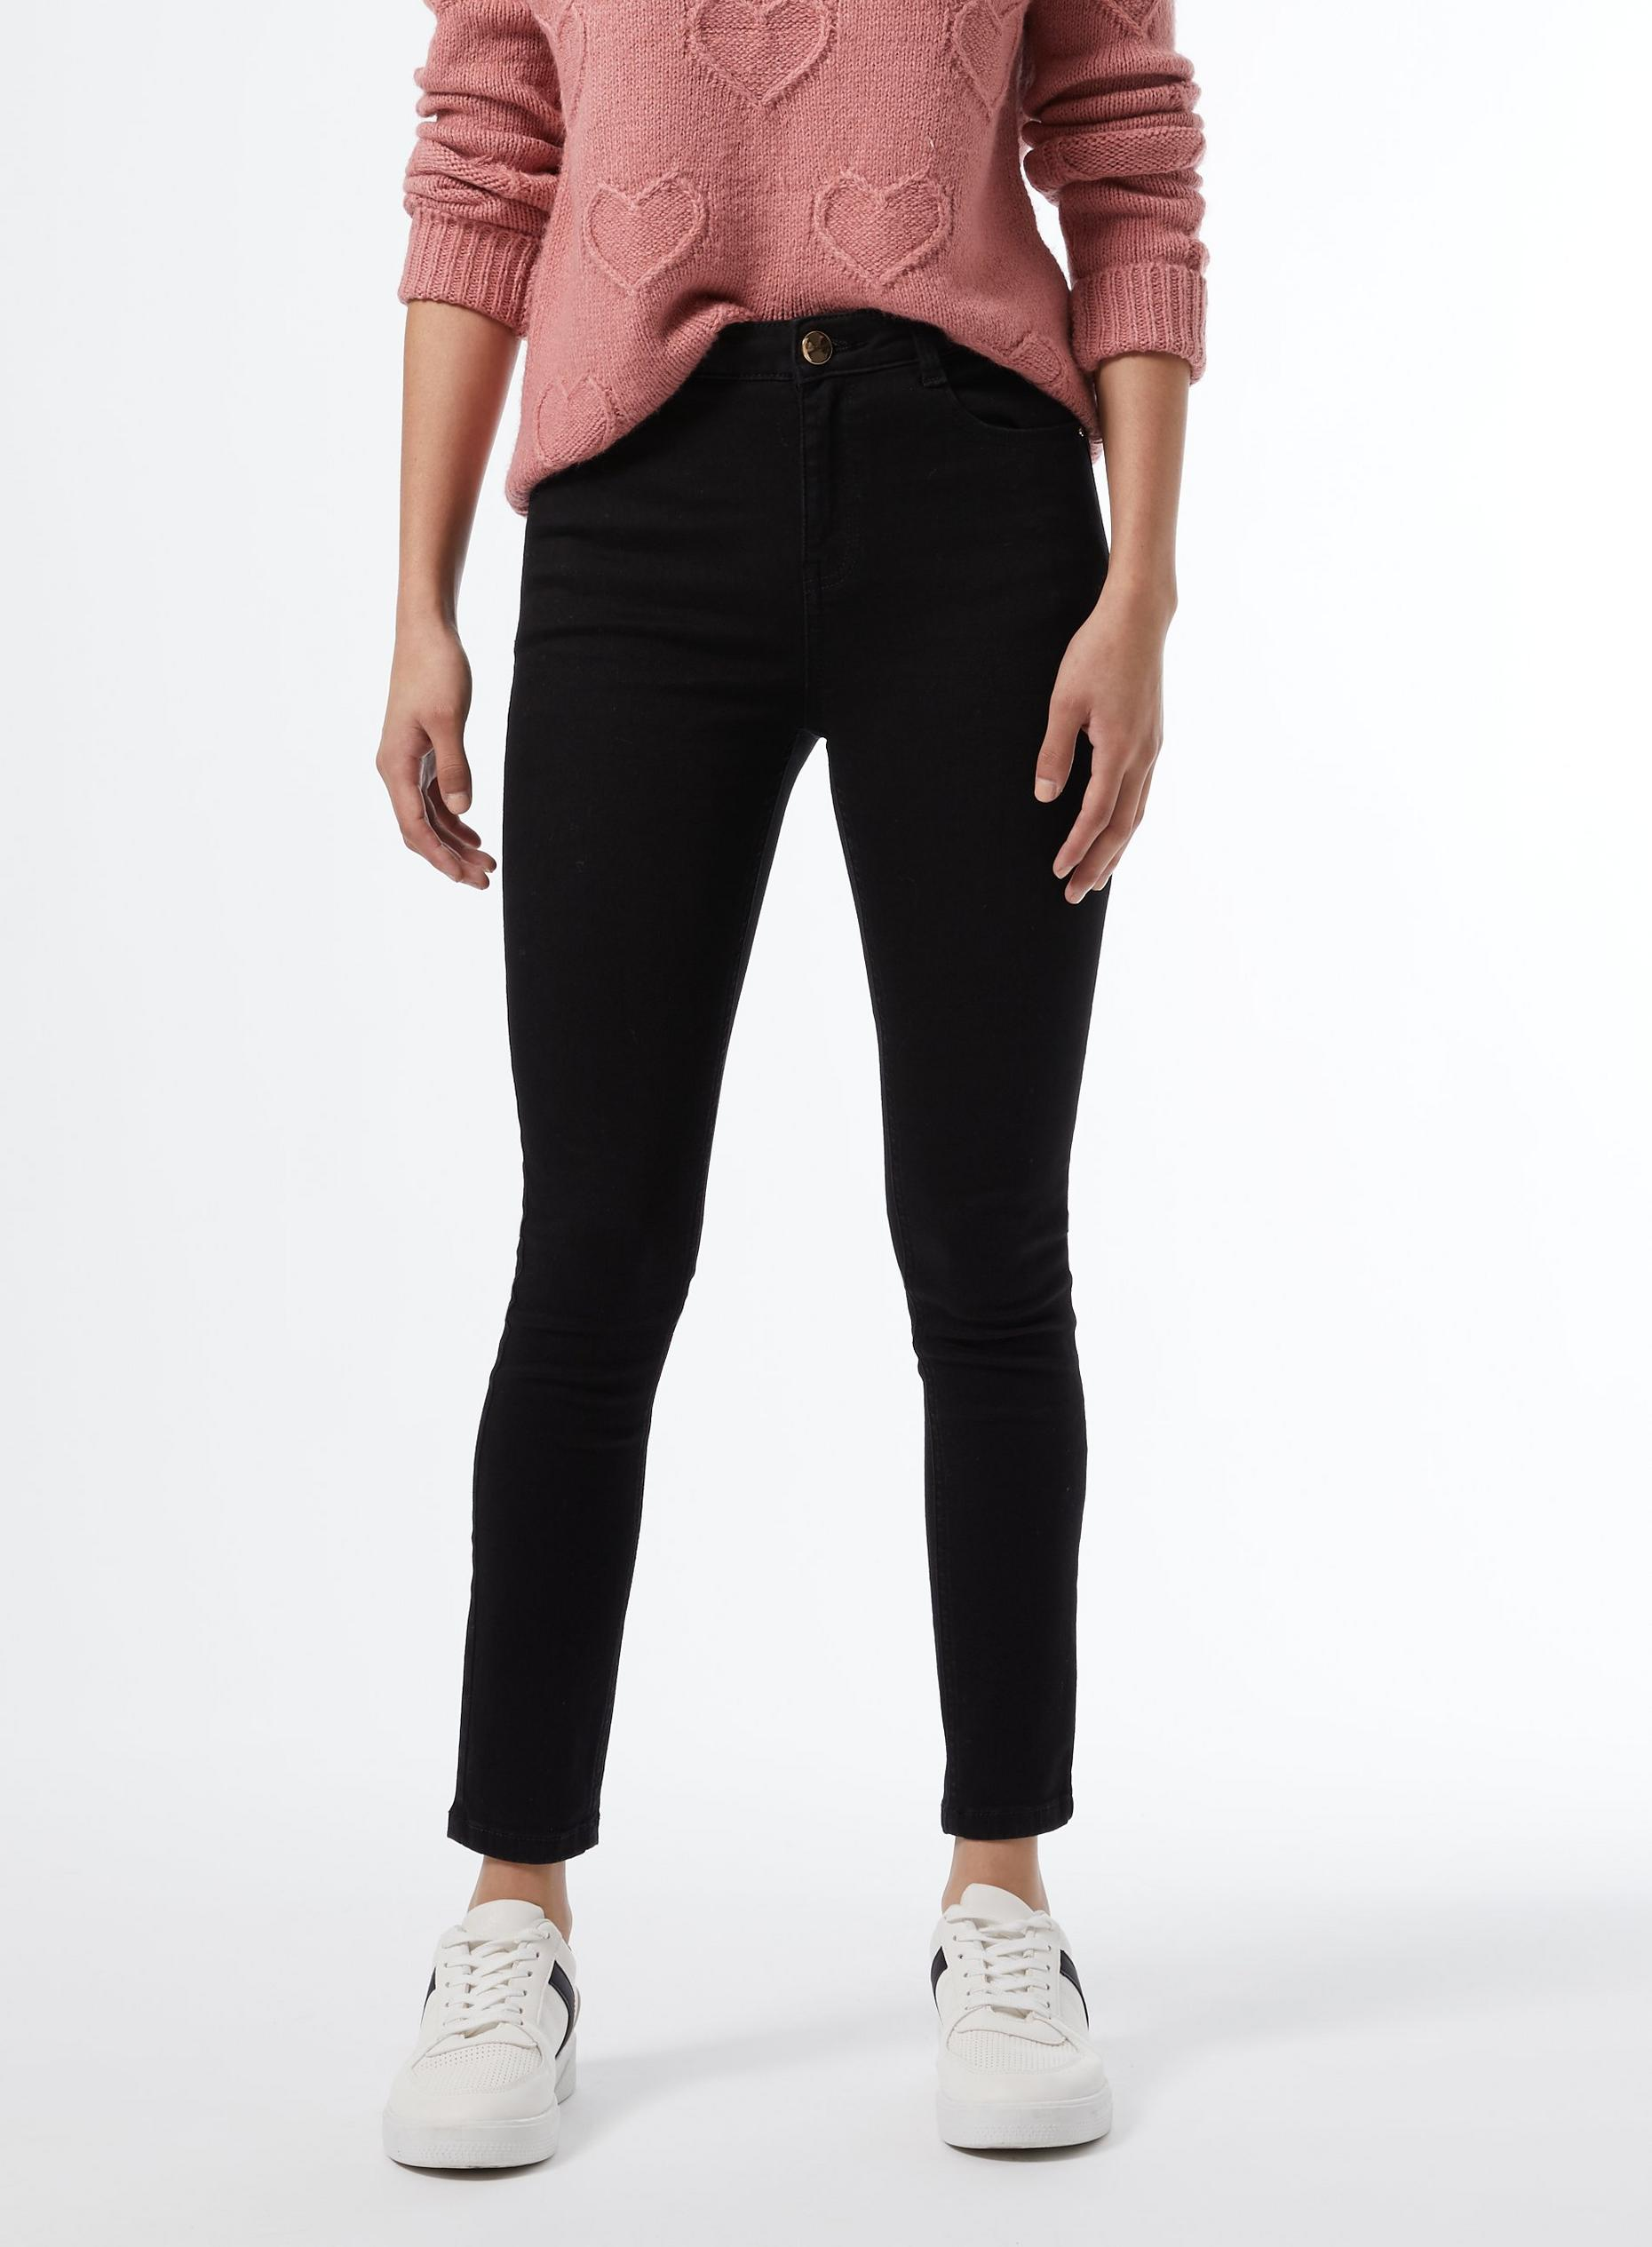 Petites Black Shaping Jeans